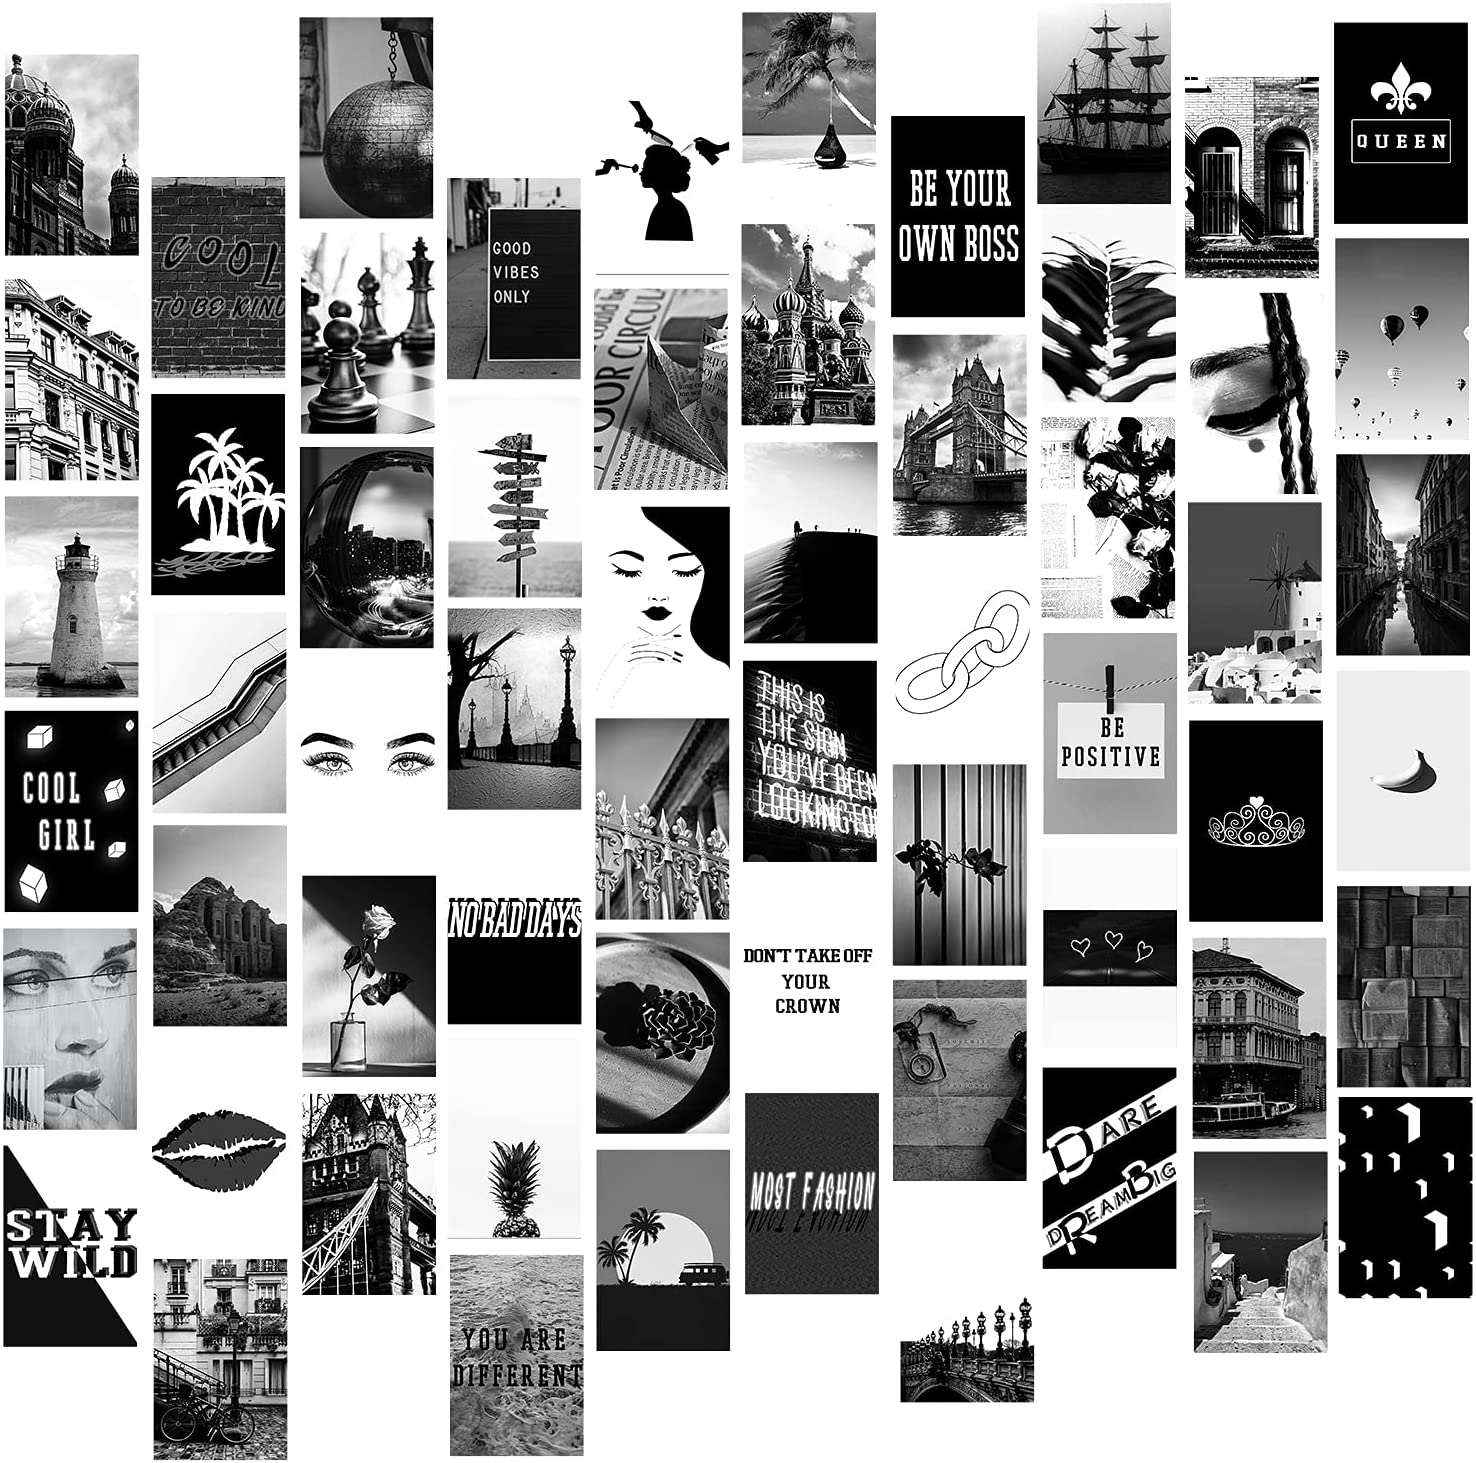 Amazon Com 60 Pieces Wall Collage Kit Aesthetic Room Decor For Bedroom Black And White Photo Art Pictures Collage Kit For Teen Girls And Women Graduation Gift For 2021 Graduates 4x6 Inch Photo Collection Home